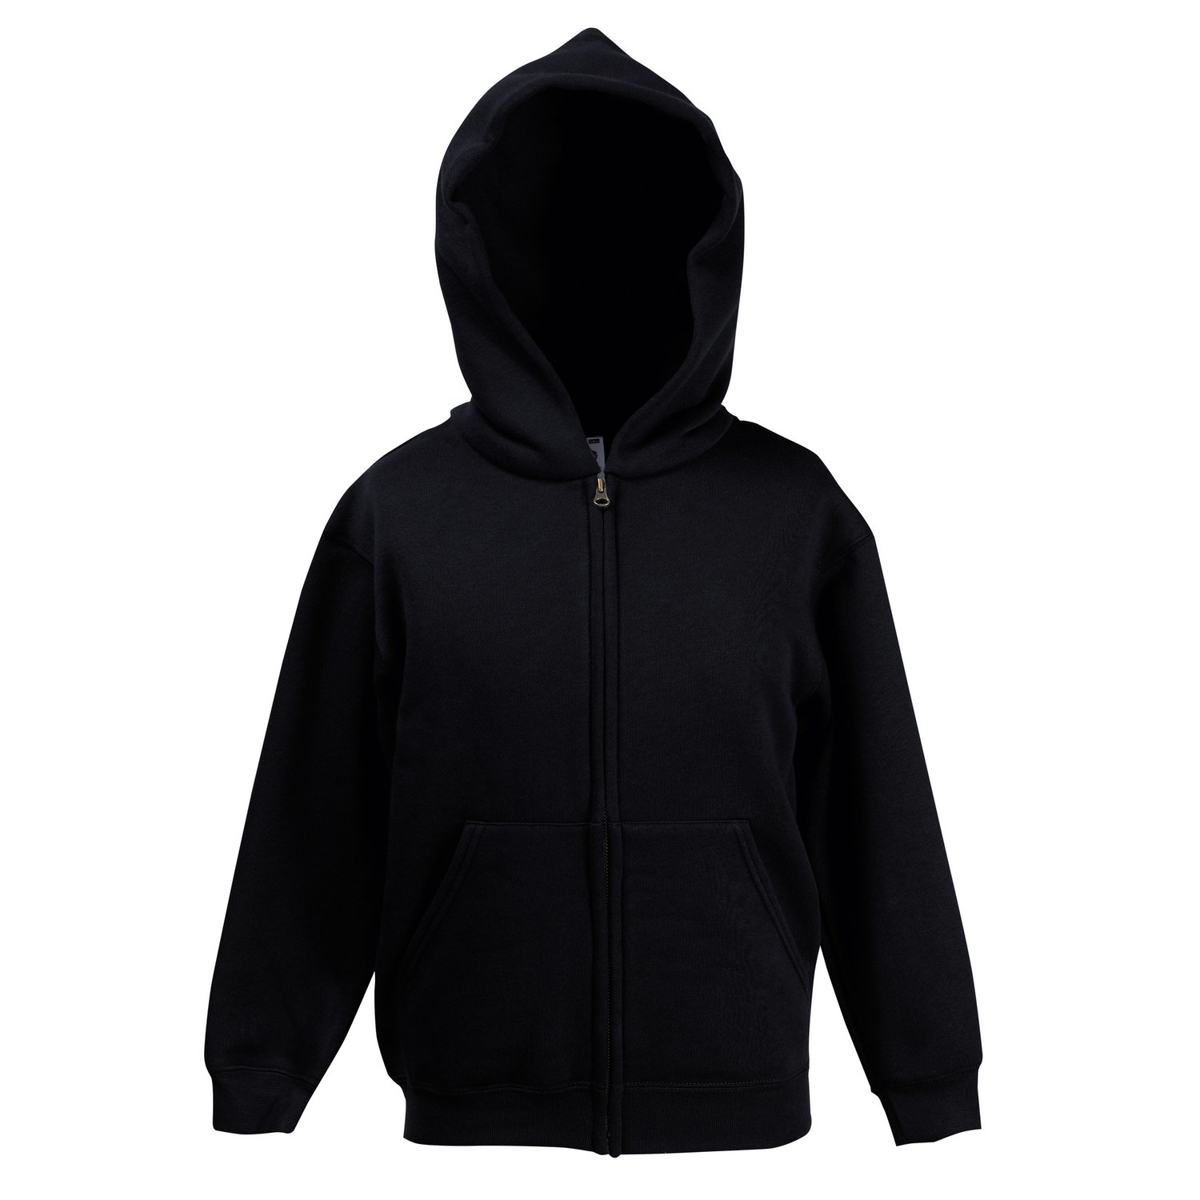 Fruit of the Loom Childrens Hoodie - Black